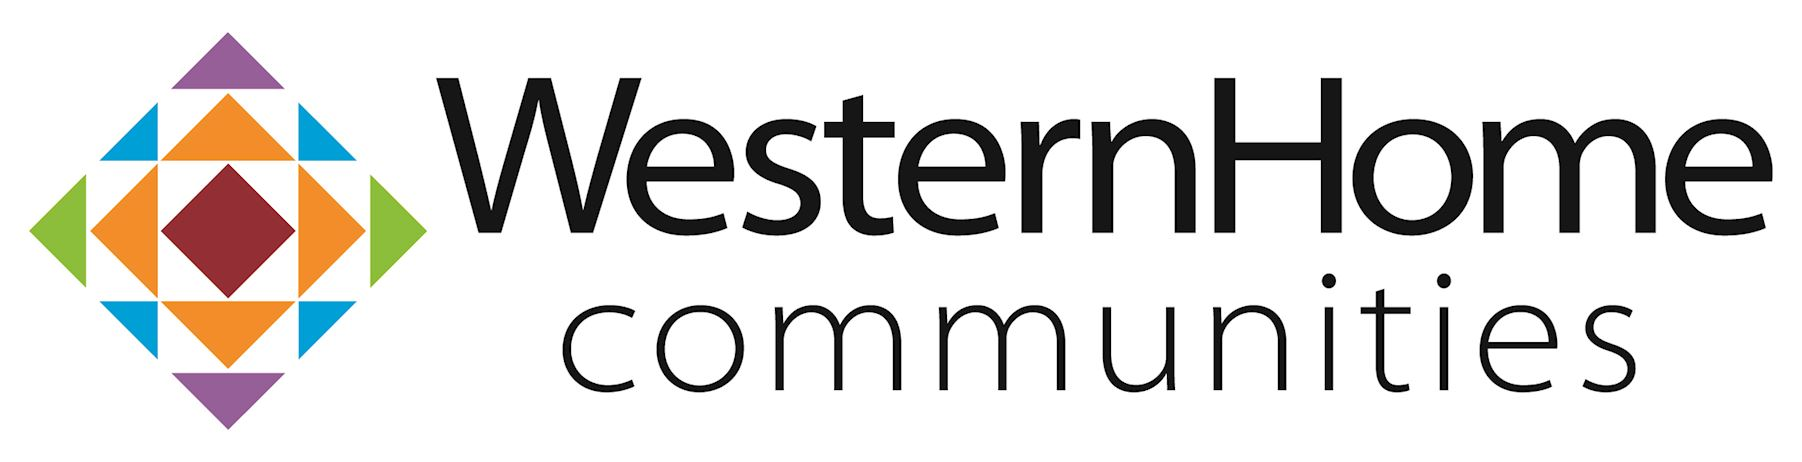 Western Home Communities